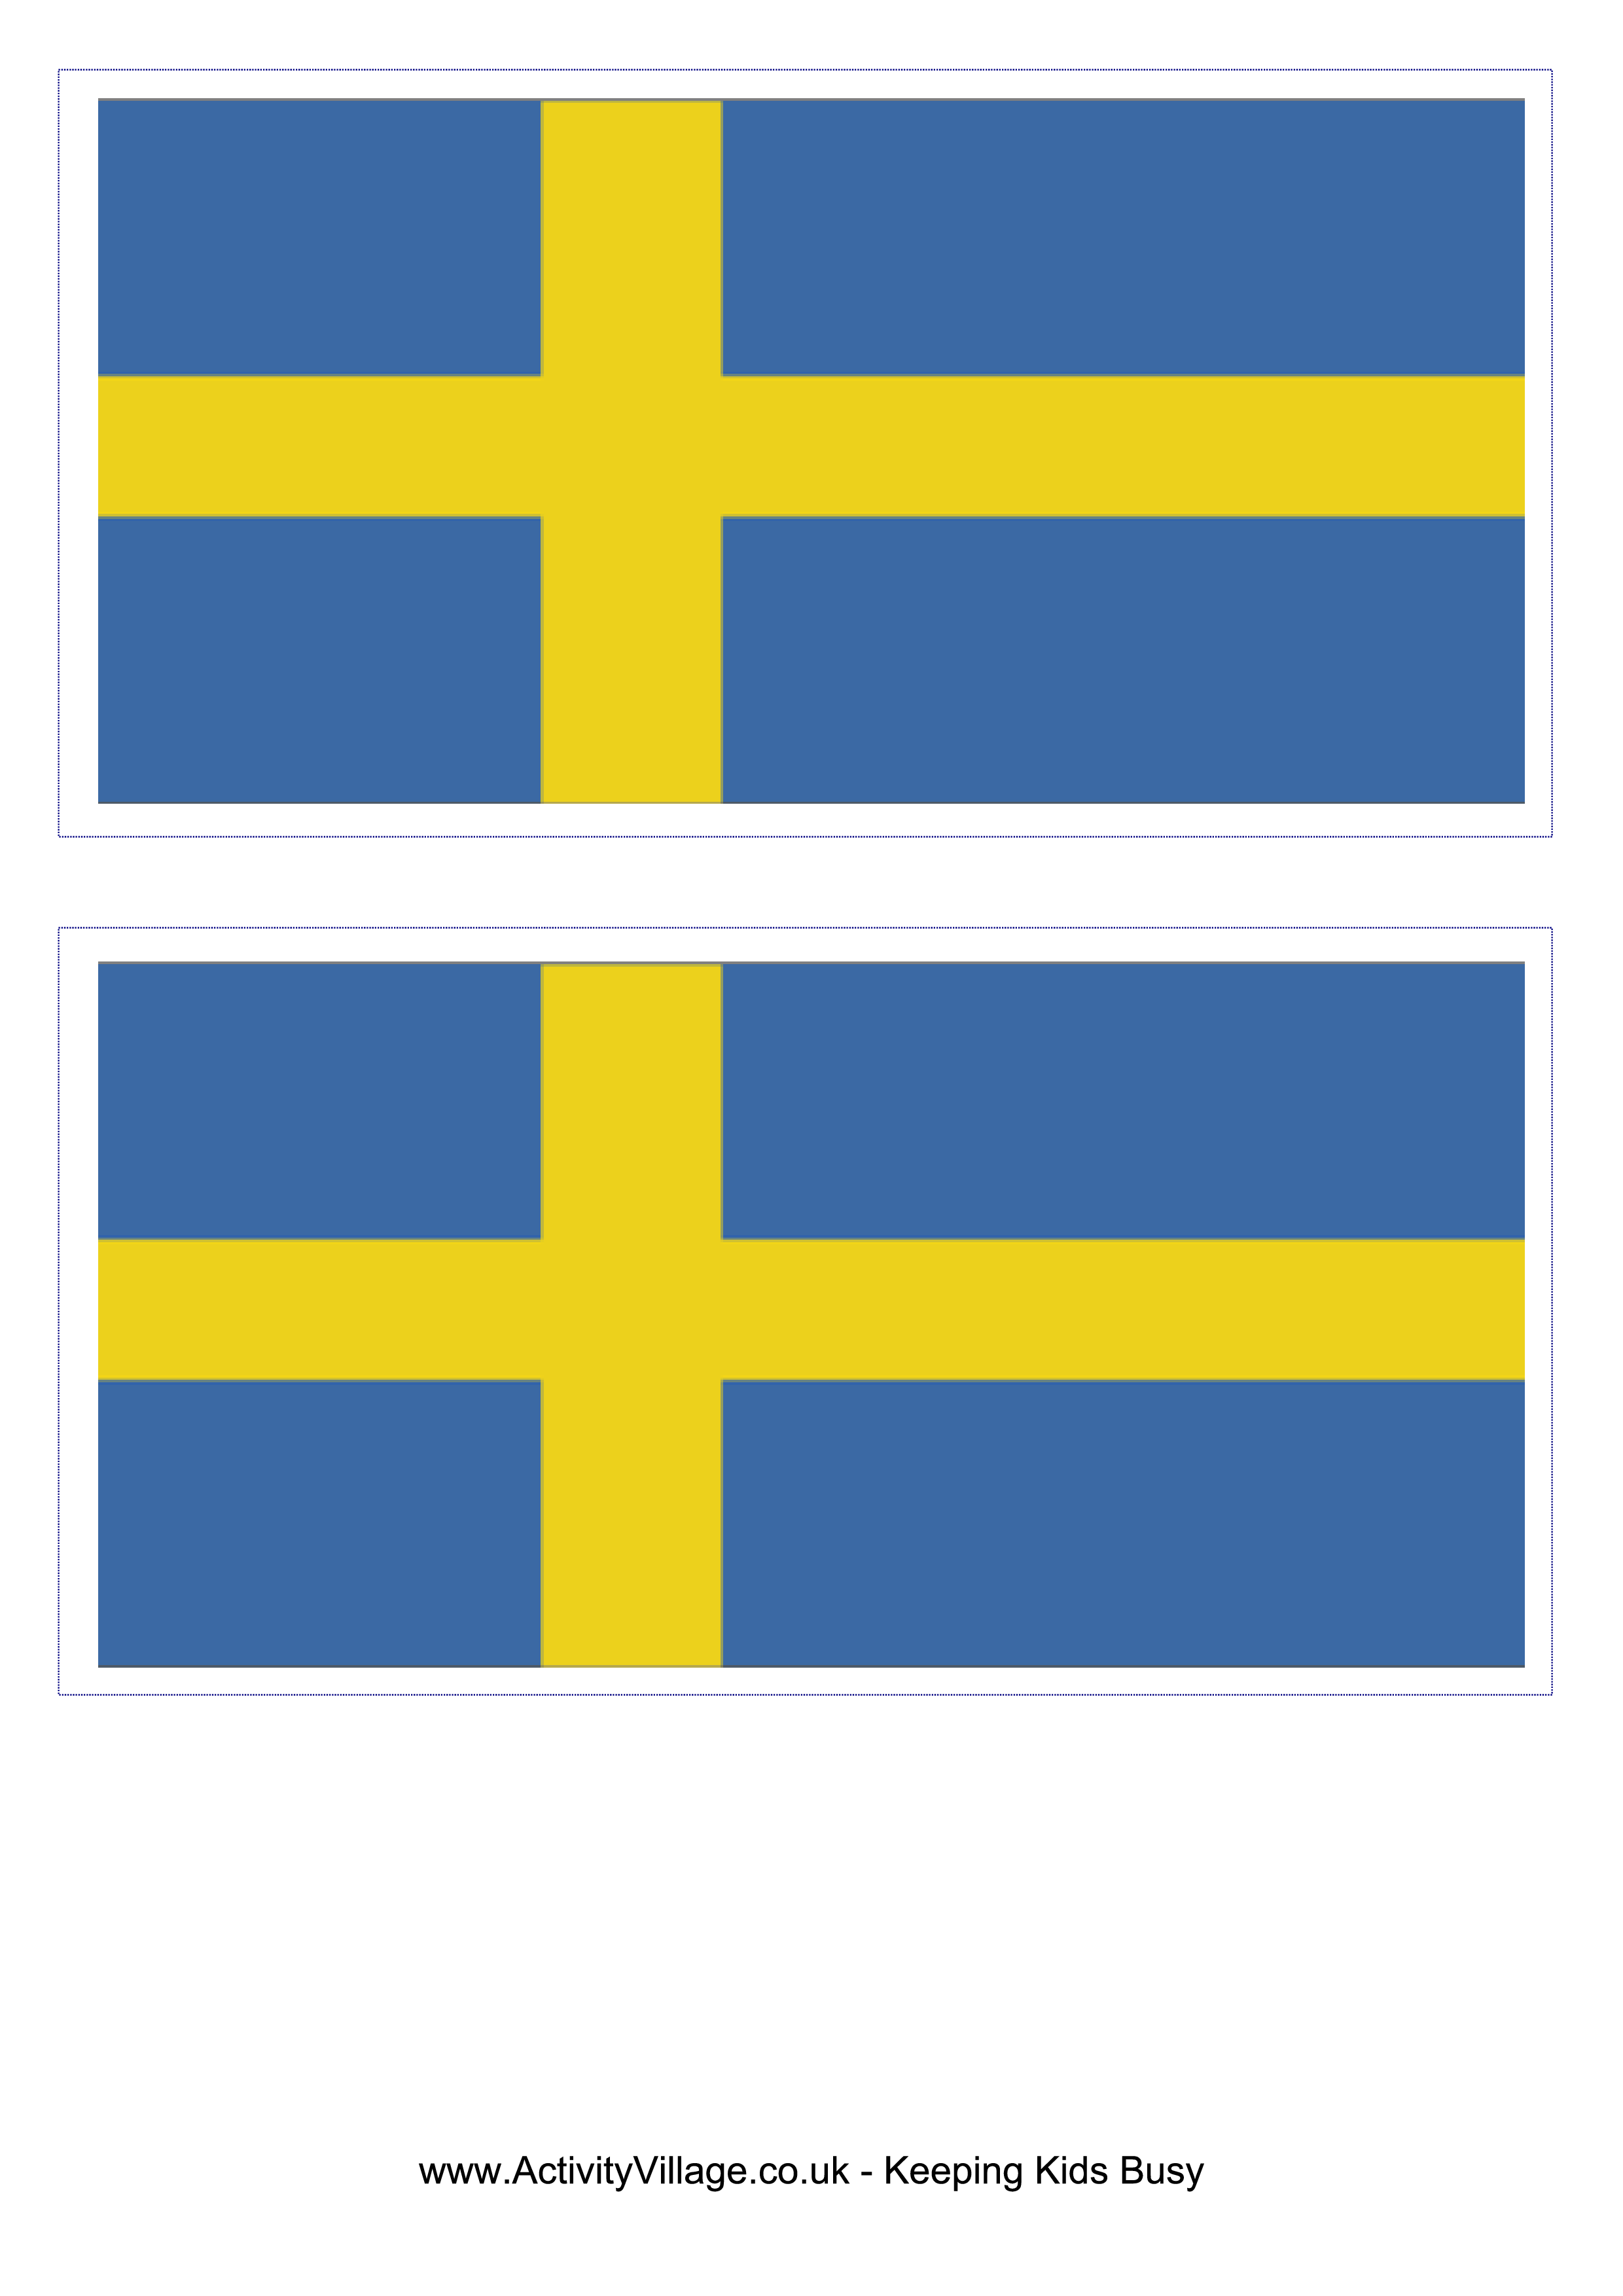 Sweden Flag Download This Free Printable Sweden Template A4 Flag A5 Flag 8 And 21 Flags On One A4page Easy To Use Sweden Flag Flag Template Flag Printable